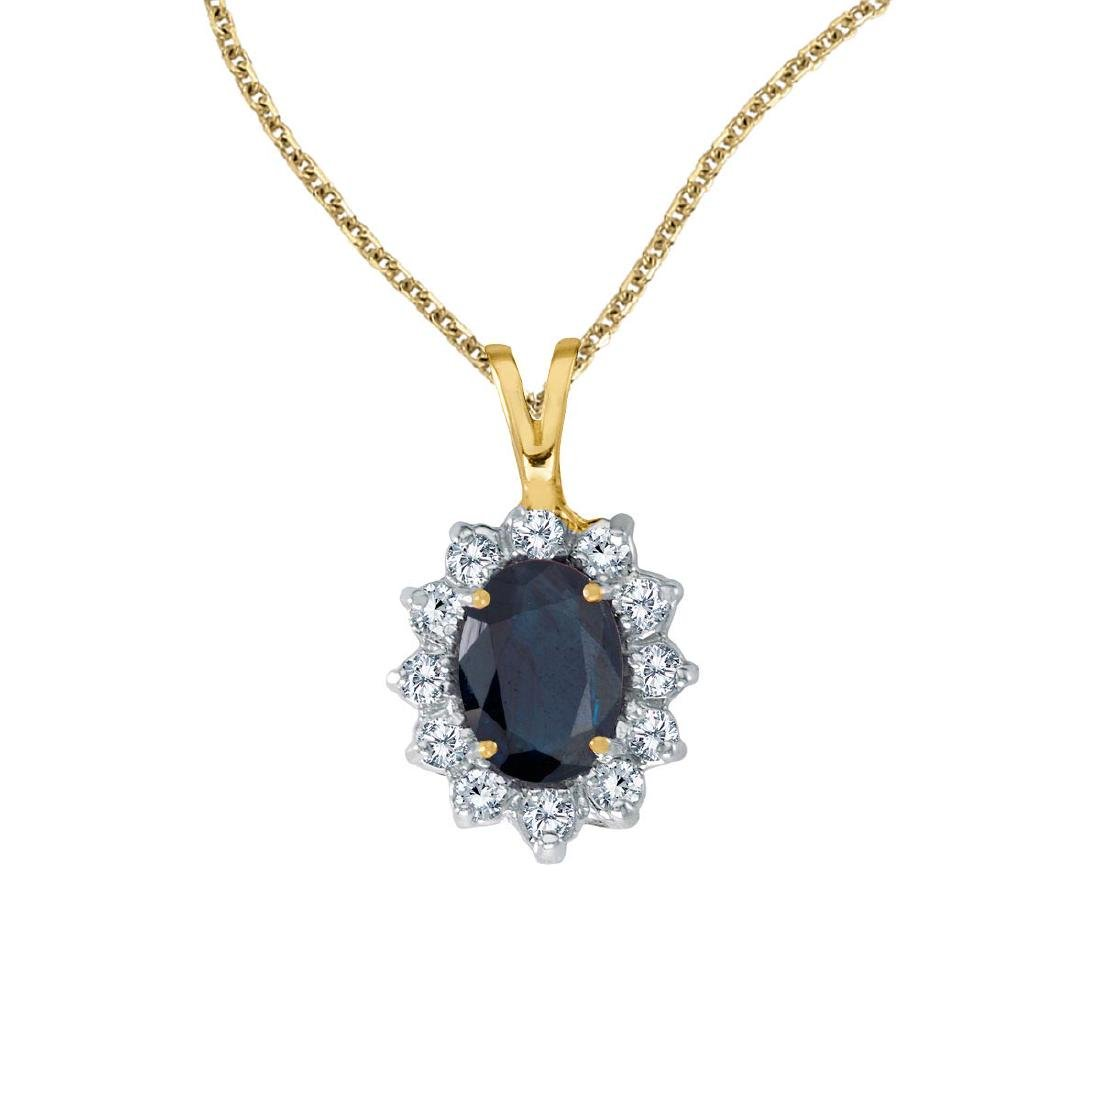 Certified 14k Yellow Gold Oval Sapphire Pendant with Di